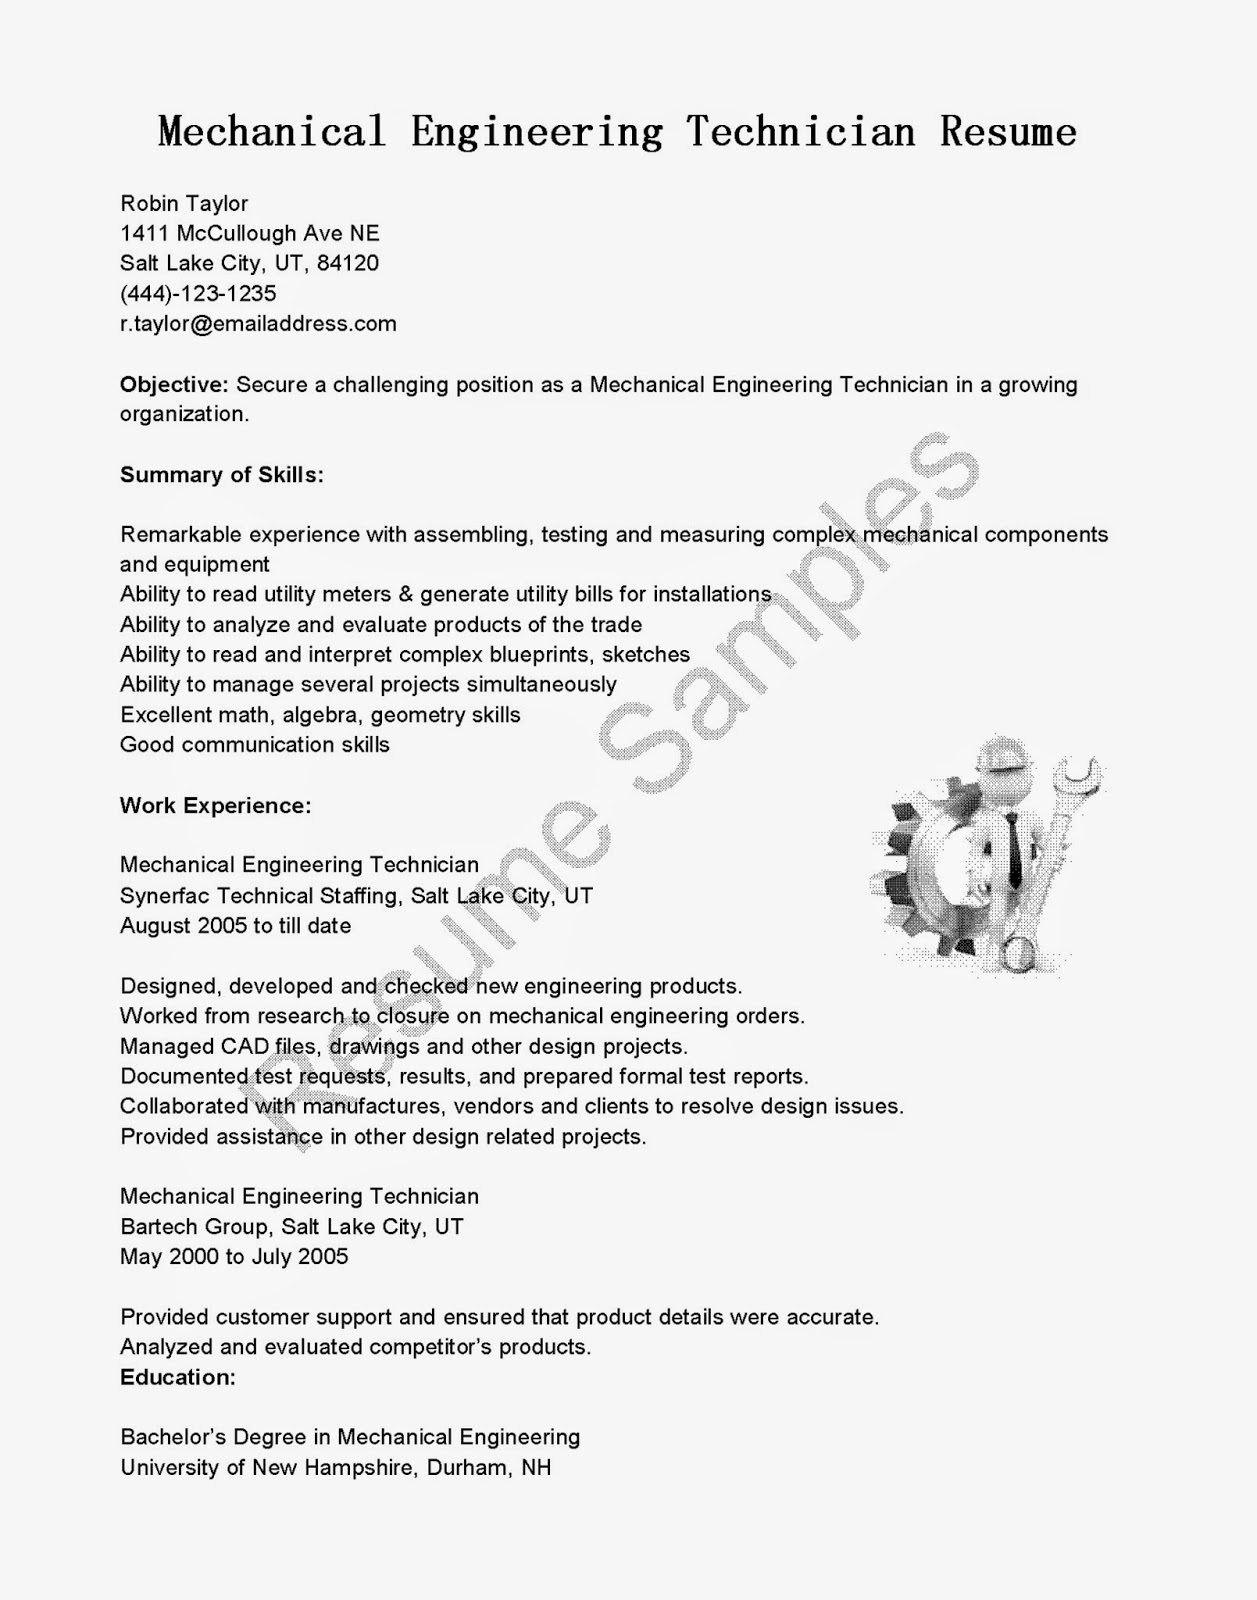 cover letter design engineer mechanical cover letter mechanical engineer oil and gas legal cover letter mechanical engineer oil and gas emc test sample - Analog Design Engineer Sample Resume